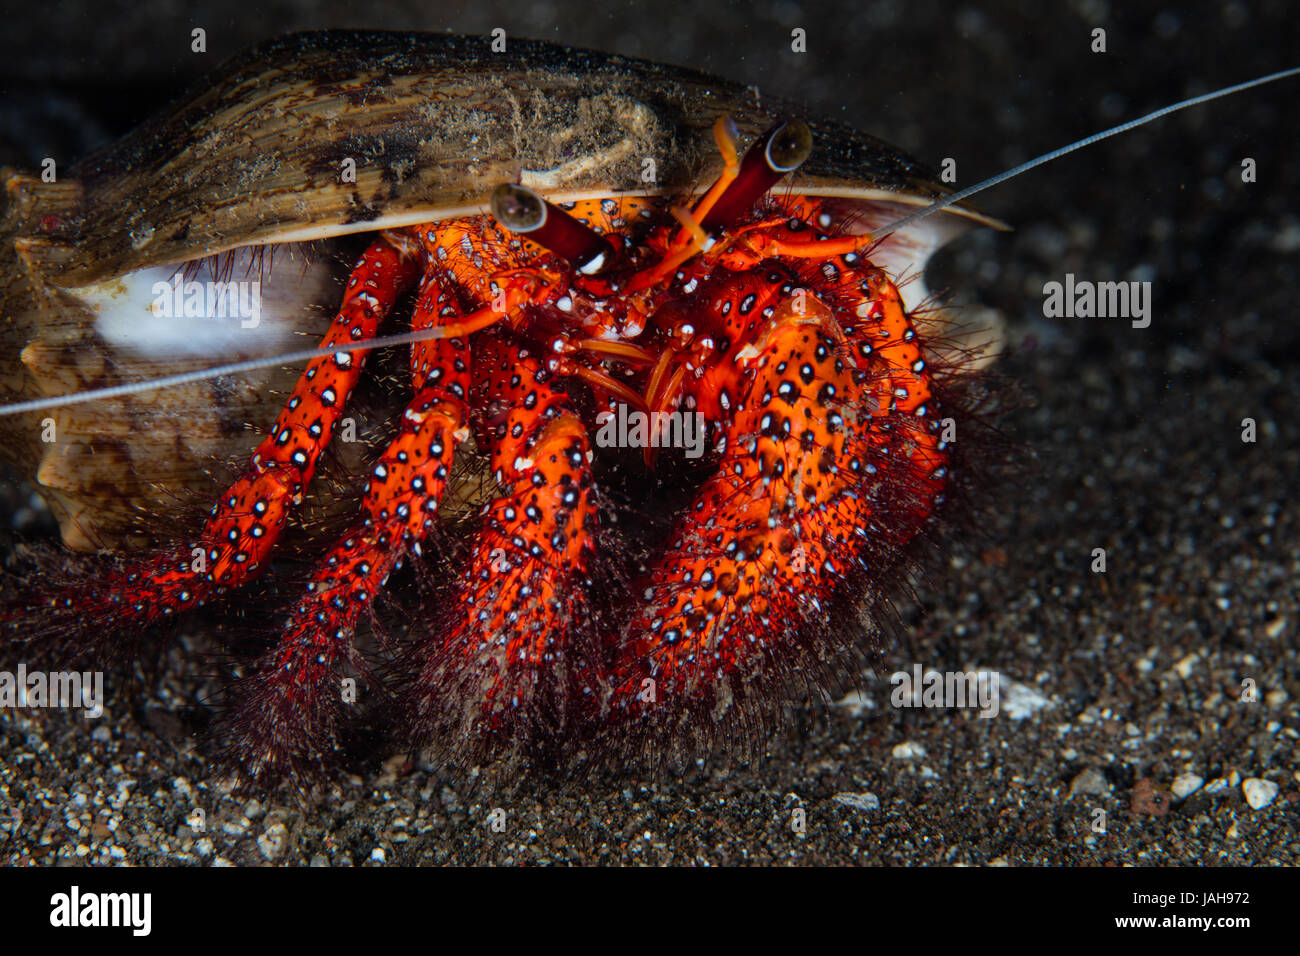 A White-spotted hermit crab crawls on the seafloor in Komodo National Park, Indonesia. This area is known for its - Stock Image